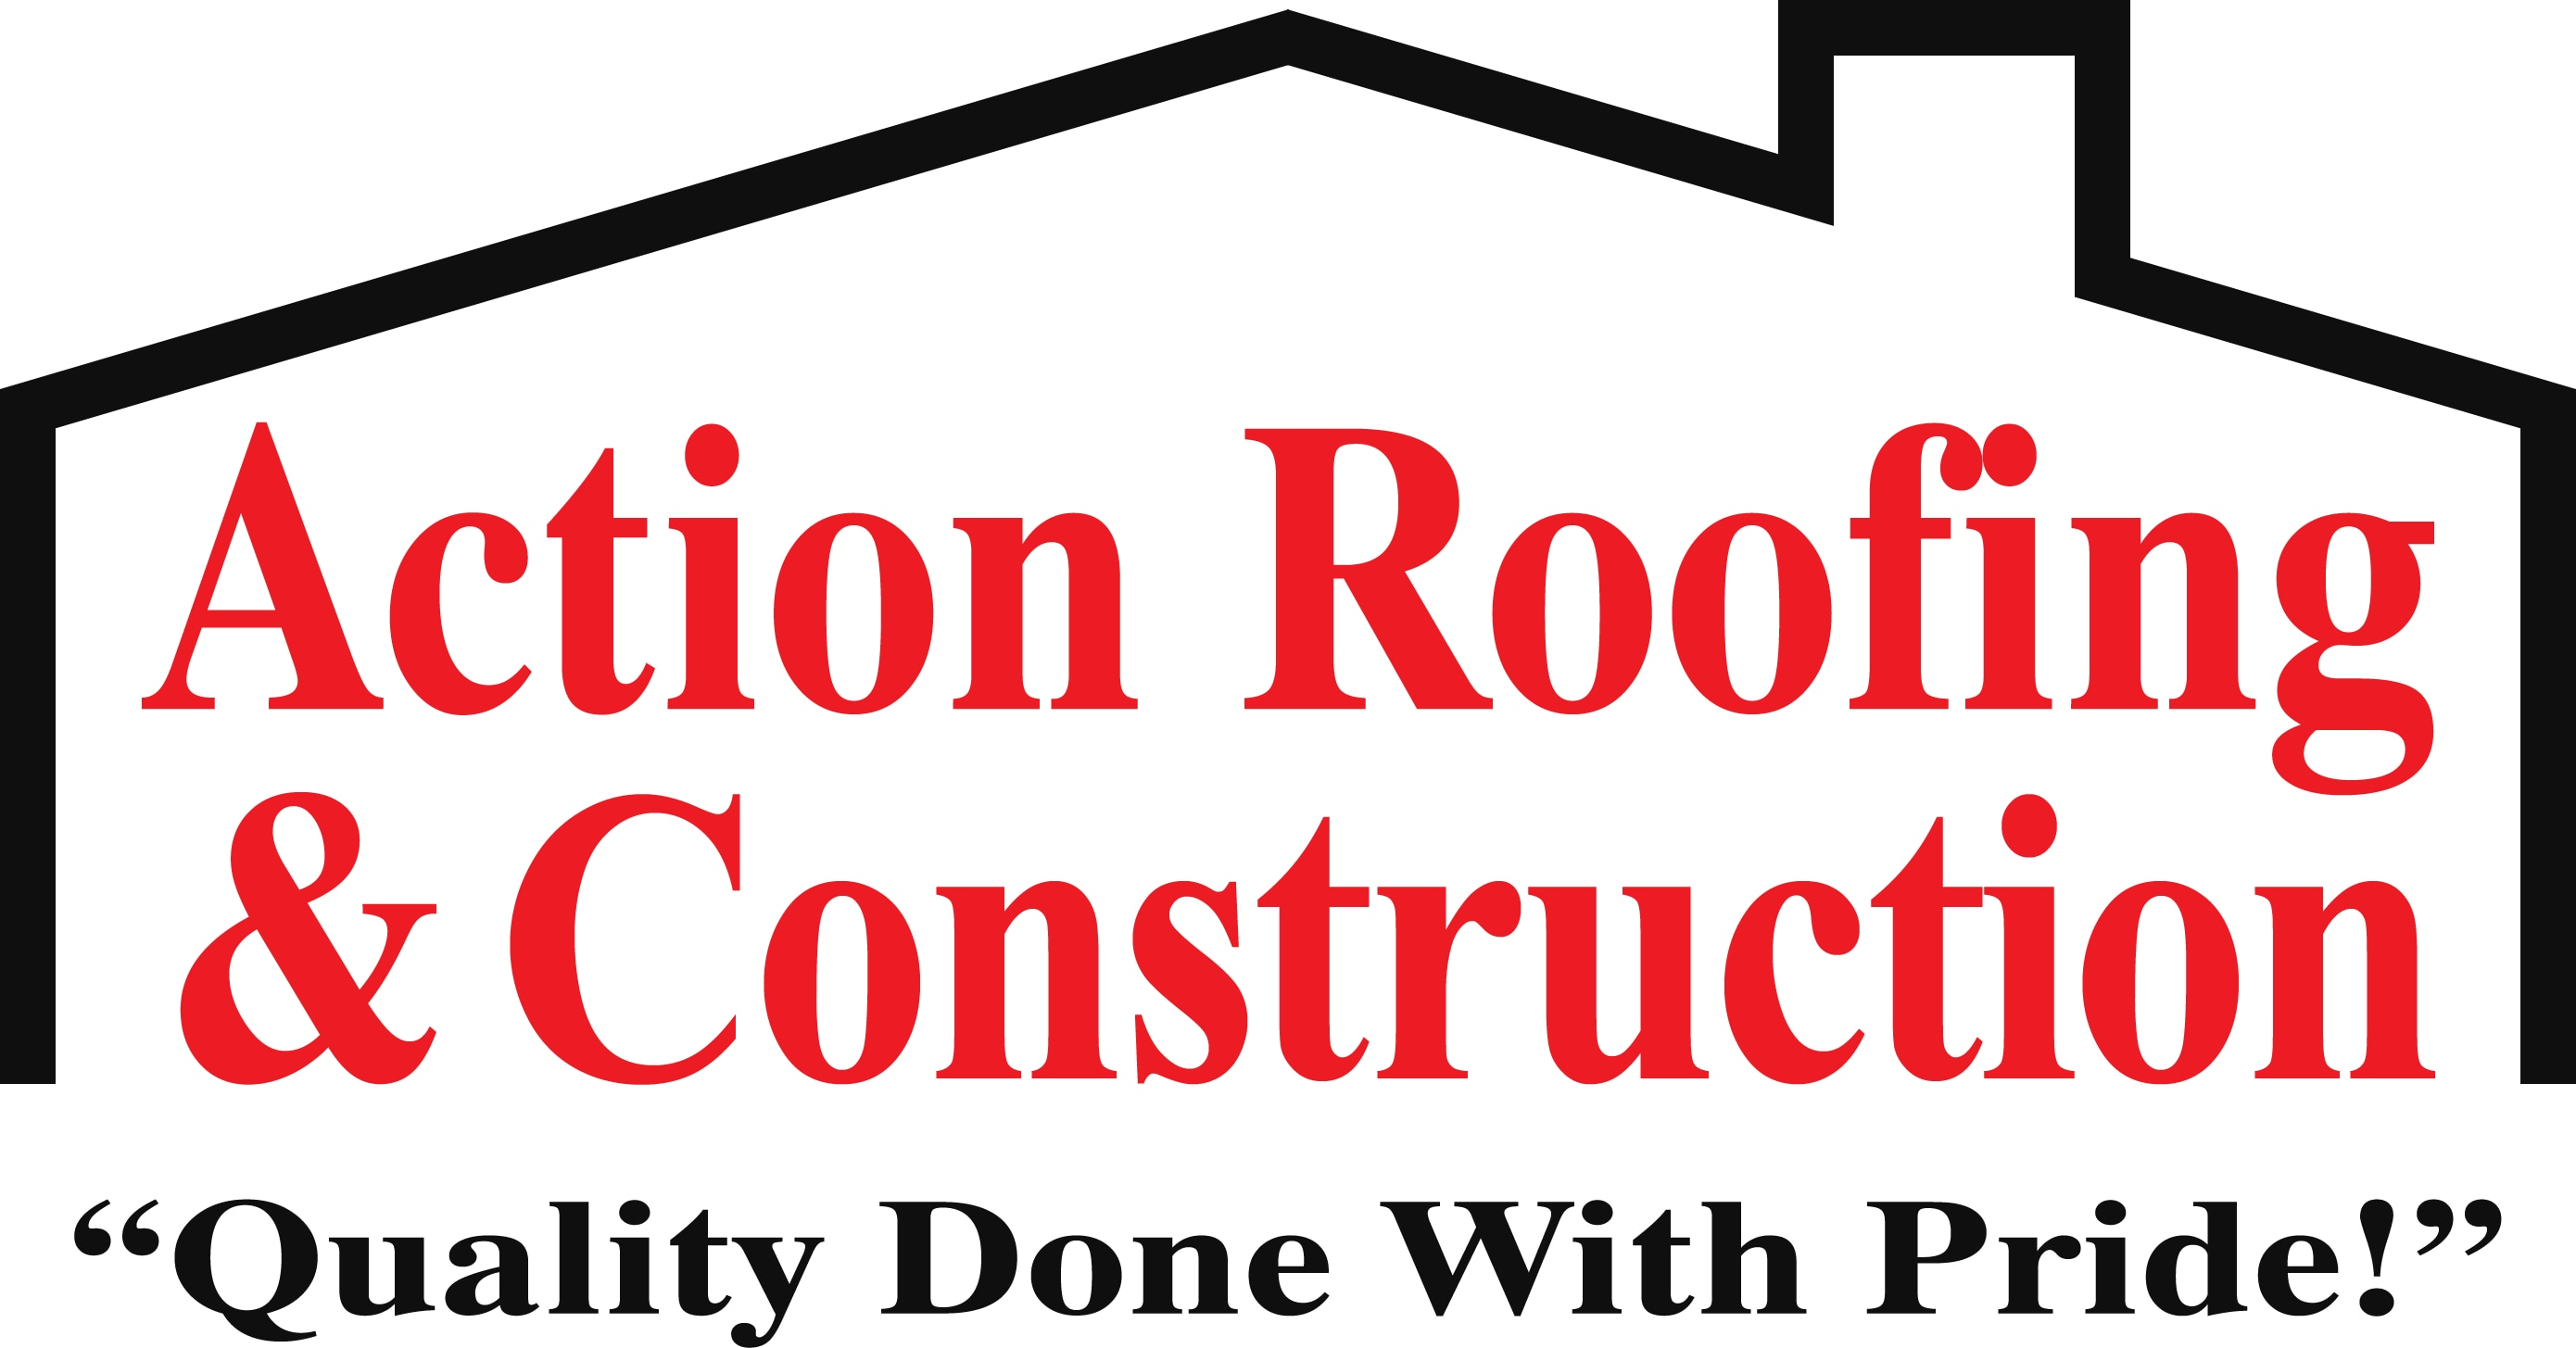 Action Roofing & Construction Inc logo